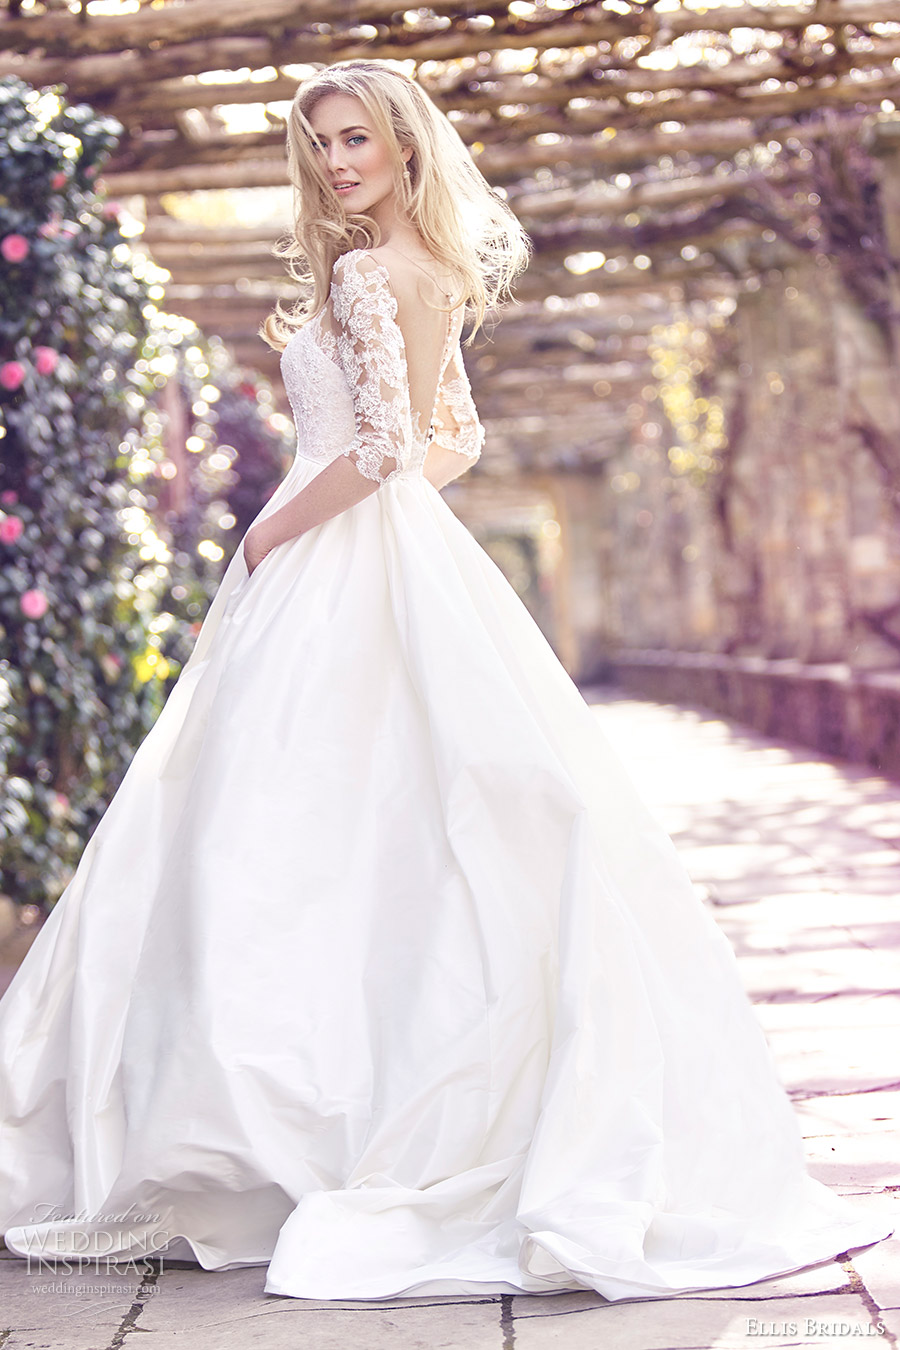 ellis bridals 2016 3 quarter sleeves sweetheart illusion jewel corset ball gown wedding dress (18023) mv sheer back buttons romantic princess